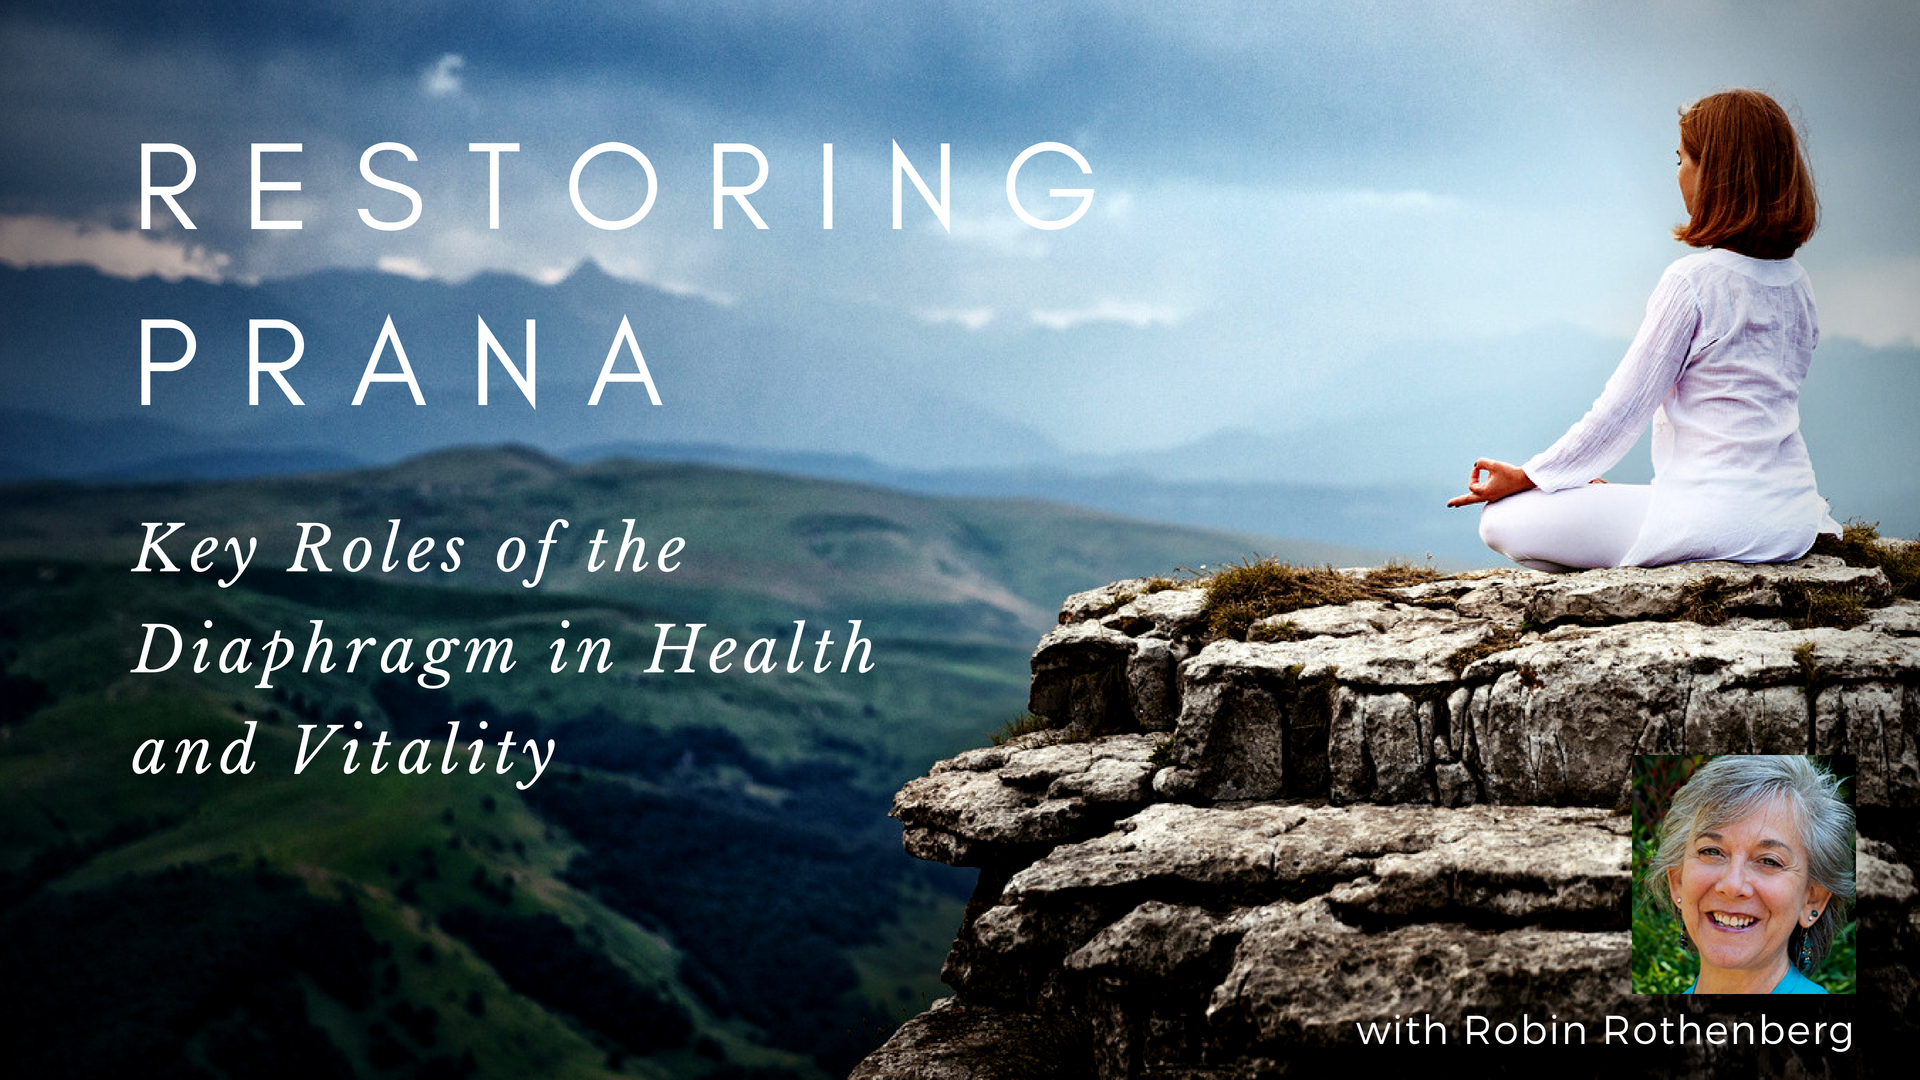 Diaphragm yoga course with Robin Rothenberg Restoring Prana